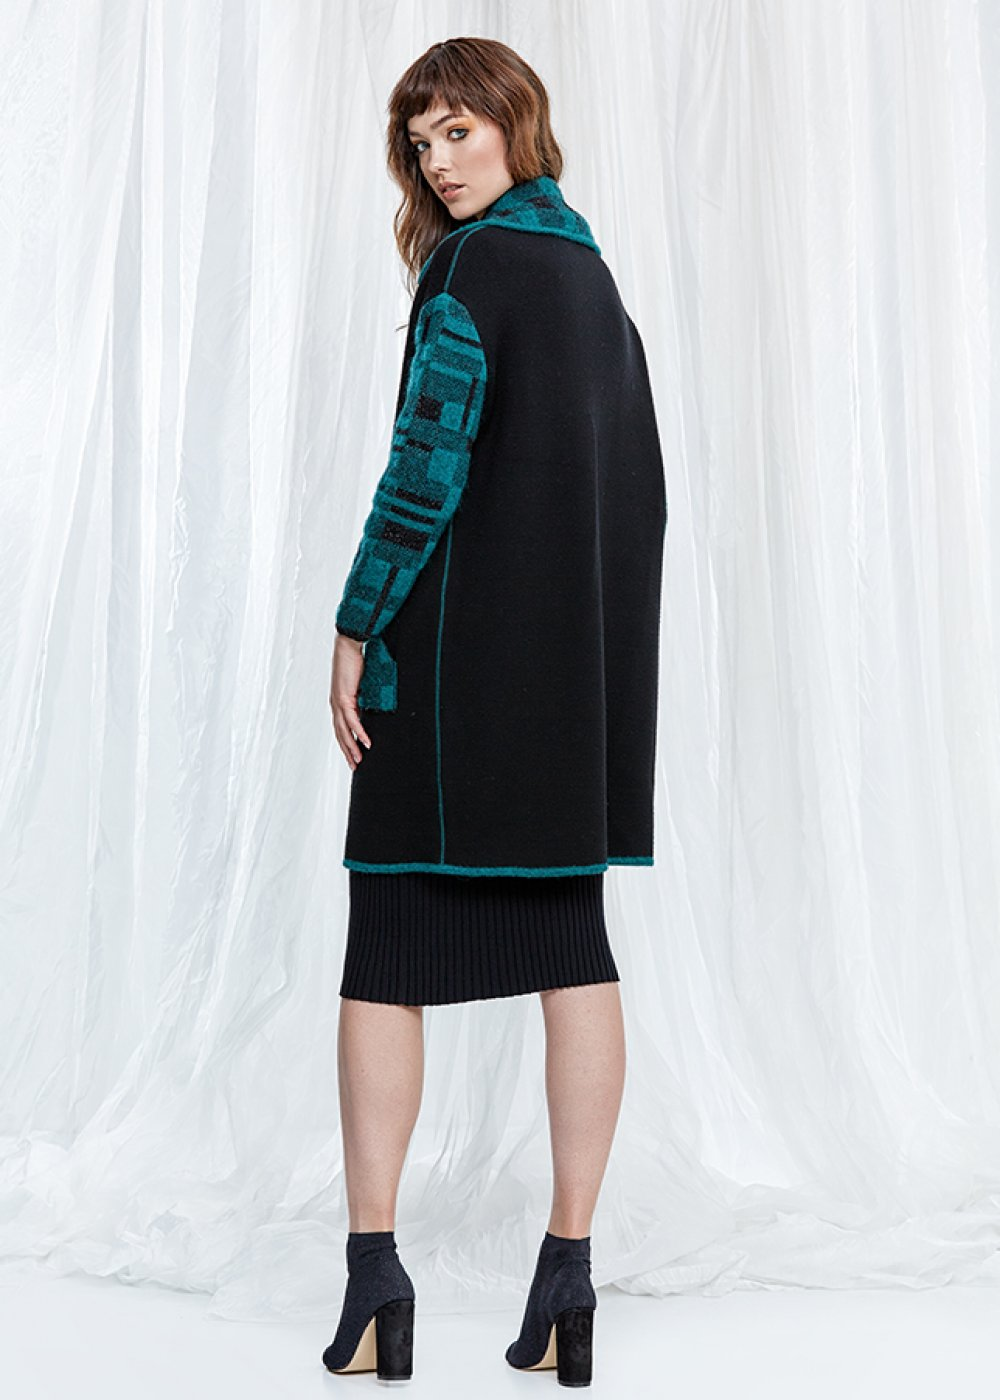 Wool Blend Black Knit Coat With Pockets